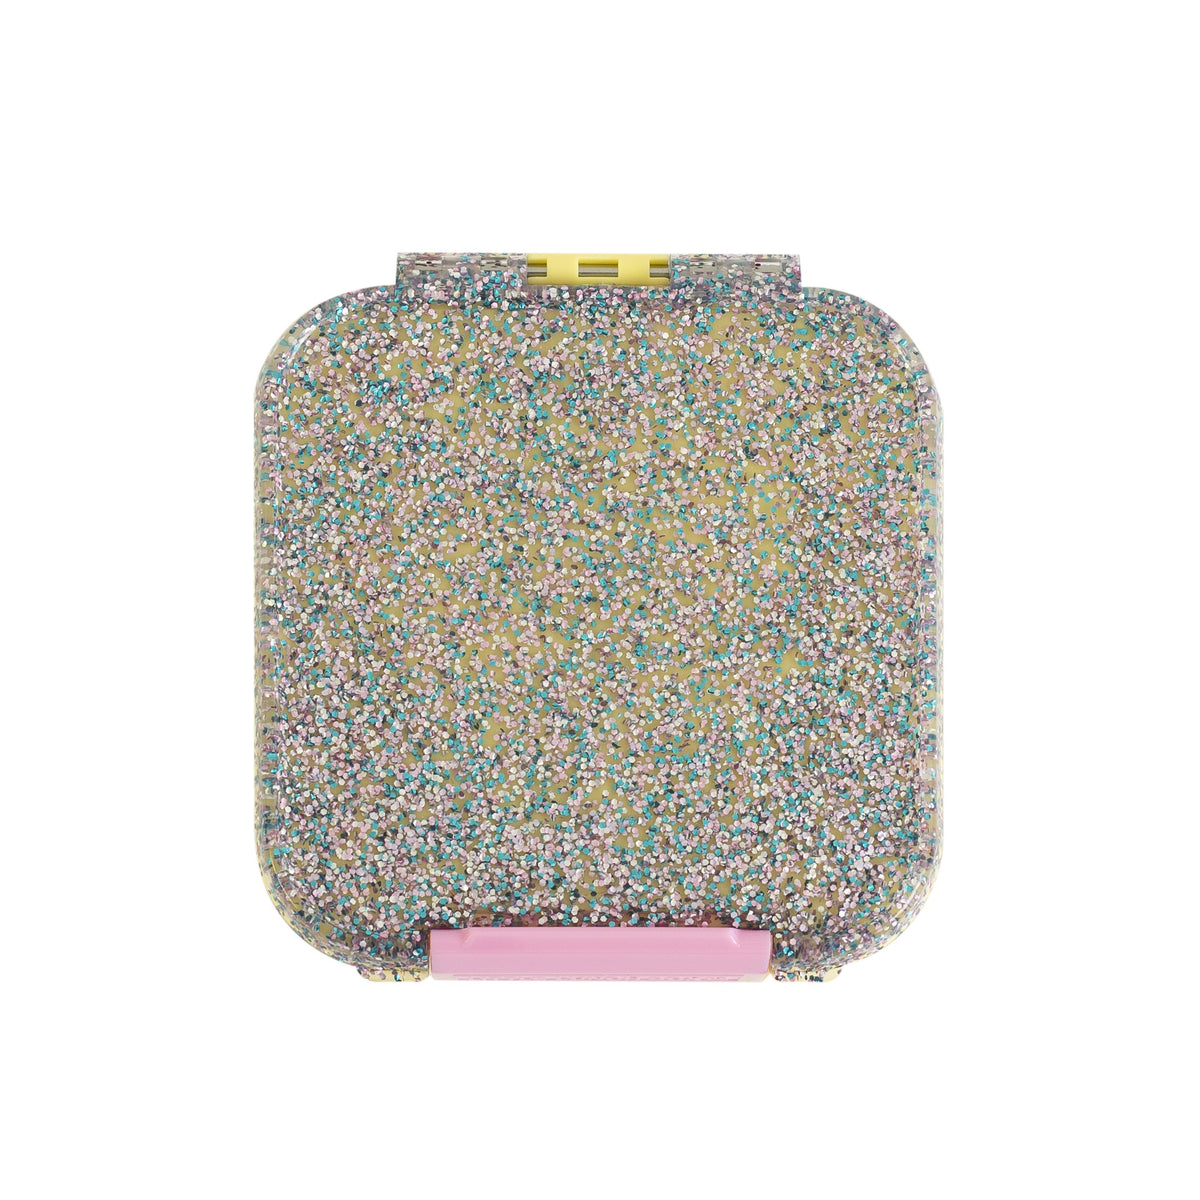 Little Lunch Box Co - Bento Five - Yellow Glitter